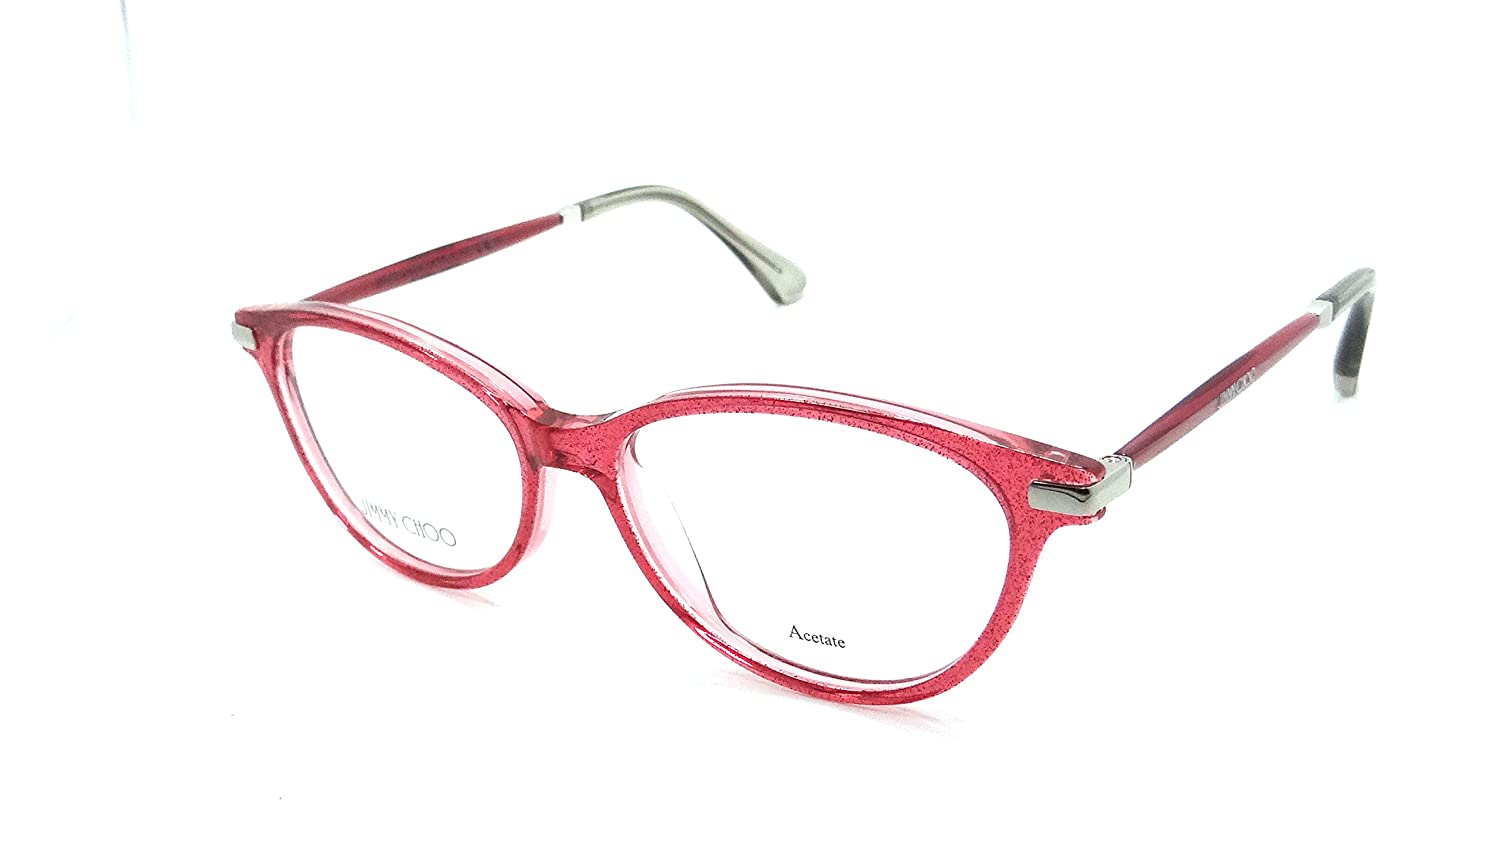 08e41eacc11d Jimmy Choo Rx Eyeglasses Frames JC 153 QC8 52-15-140 Red Glitter Made in  Italy at Amazon Women s Clothing store